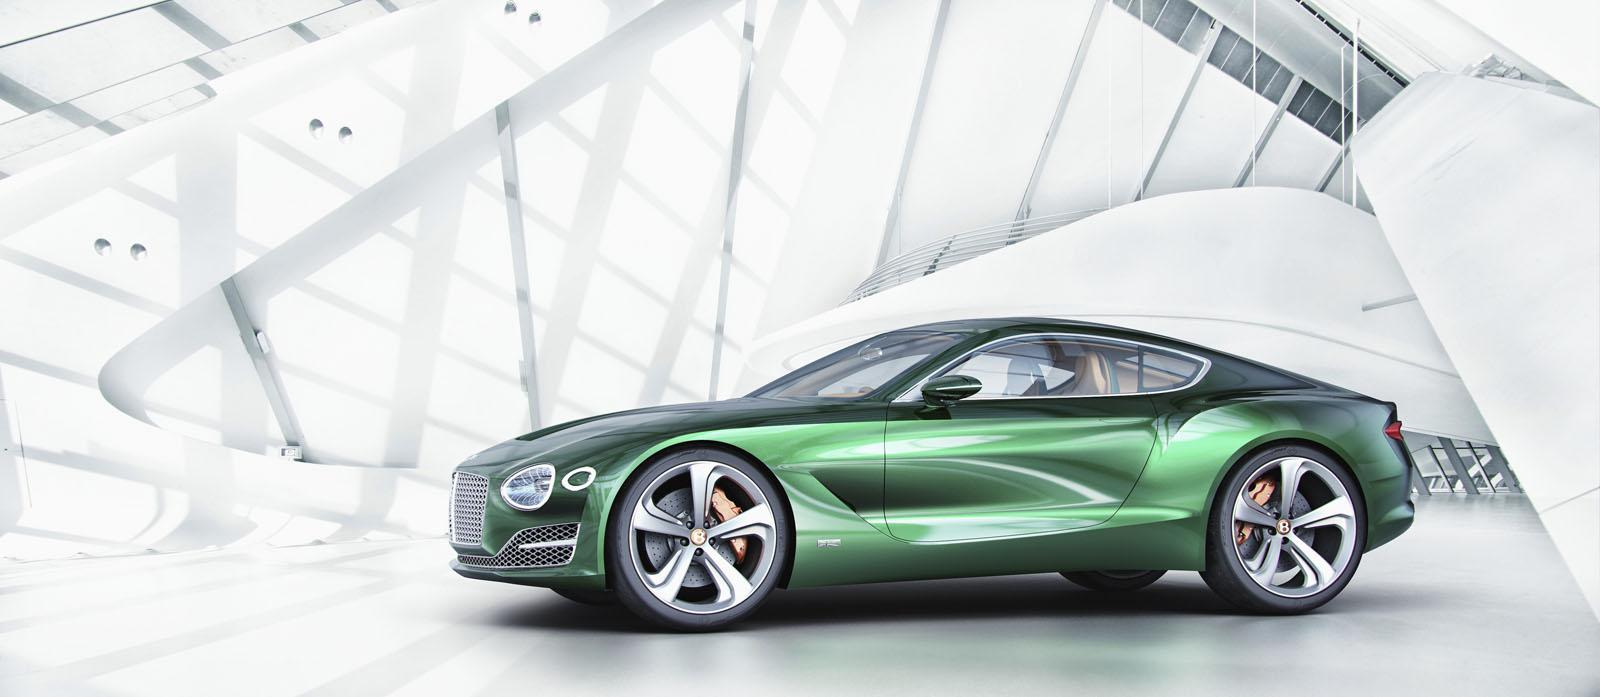 bentley-exp10-concept